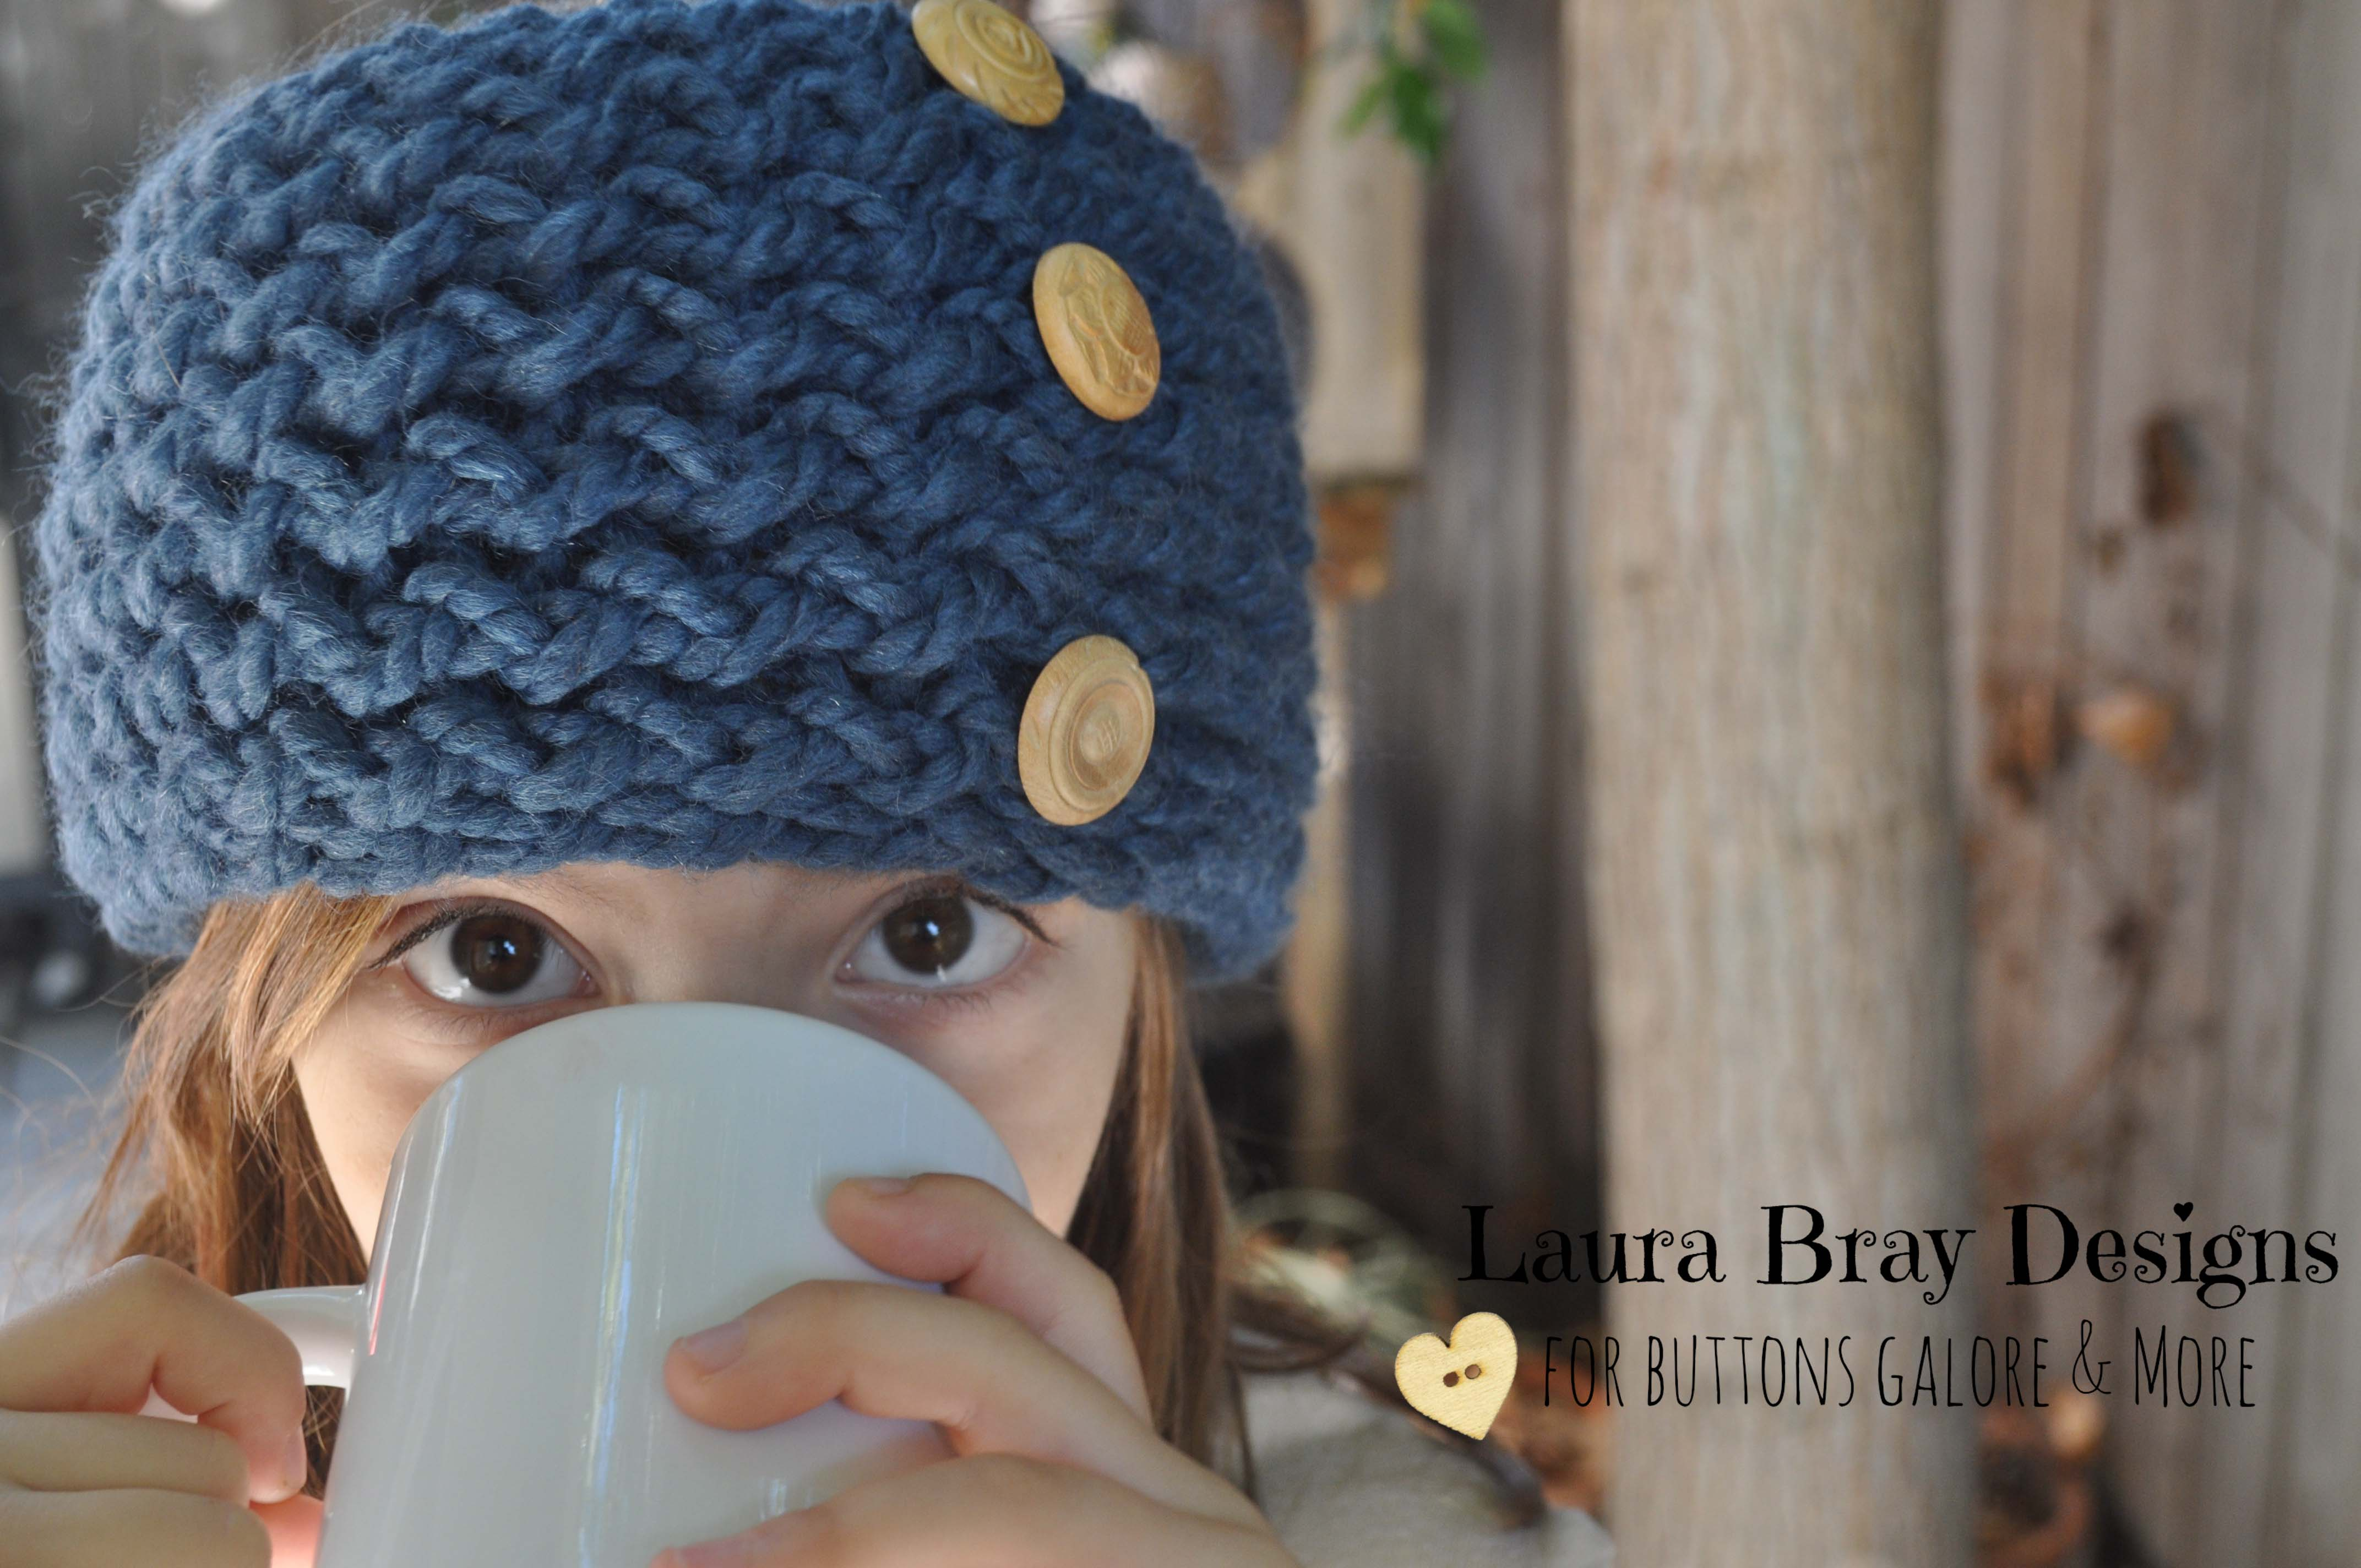 Knit Headband Pattern With Button : Knit Headband with Wood Buttons